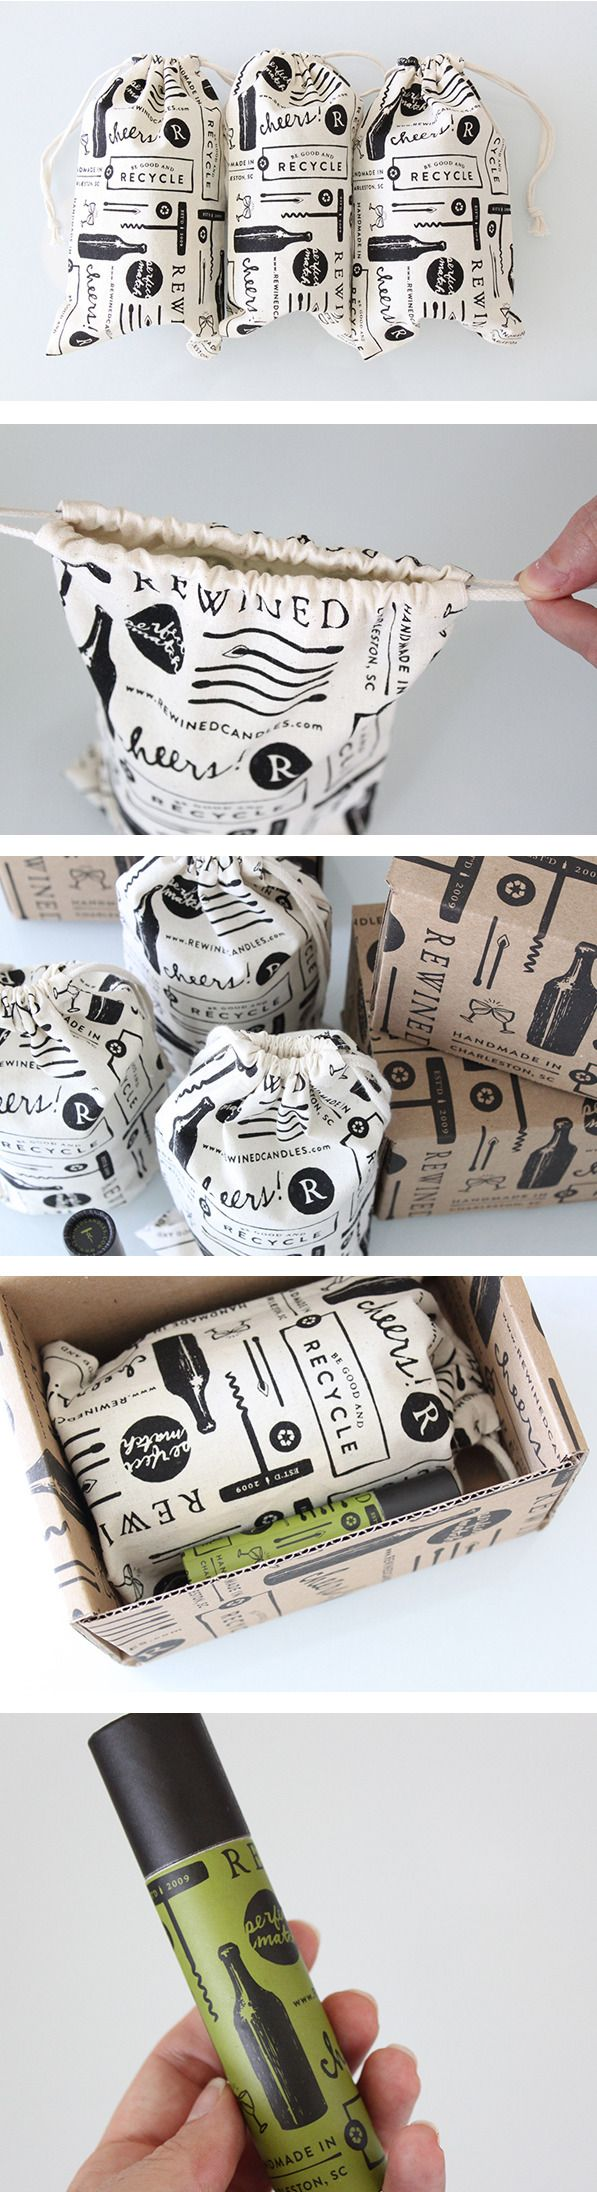 Rewined | LW products as graphic elements and voice on packaging